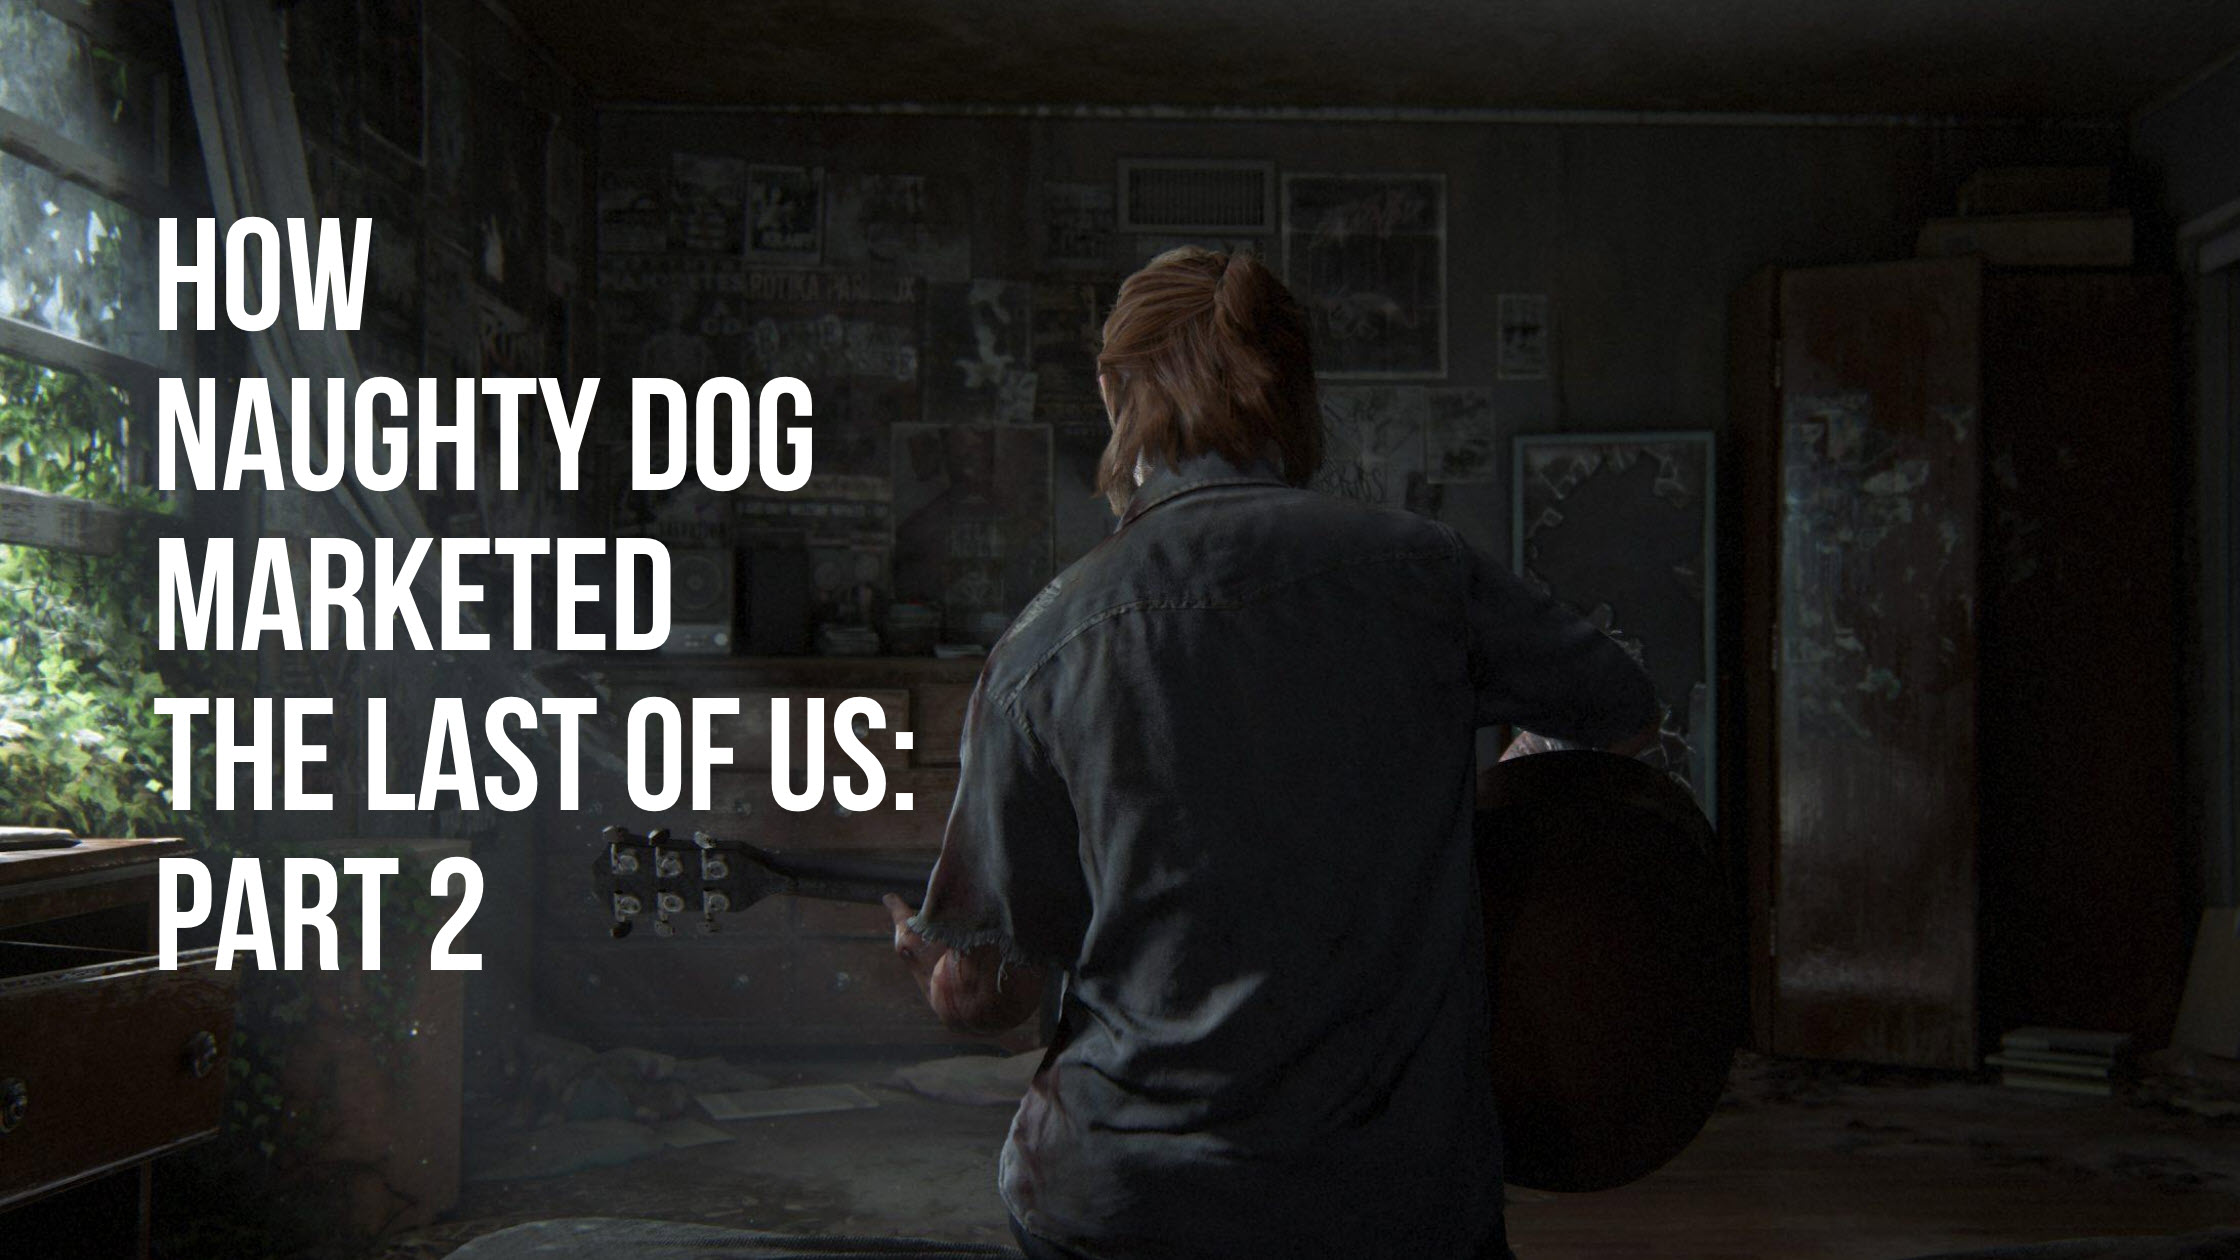 How Naughty Dog Marketed The Last of Us 2